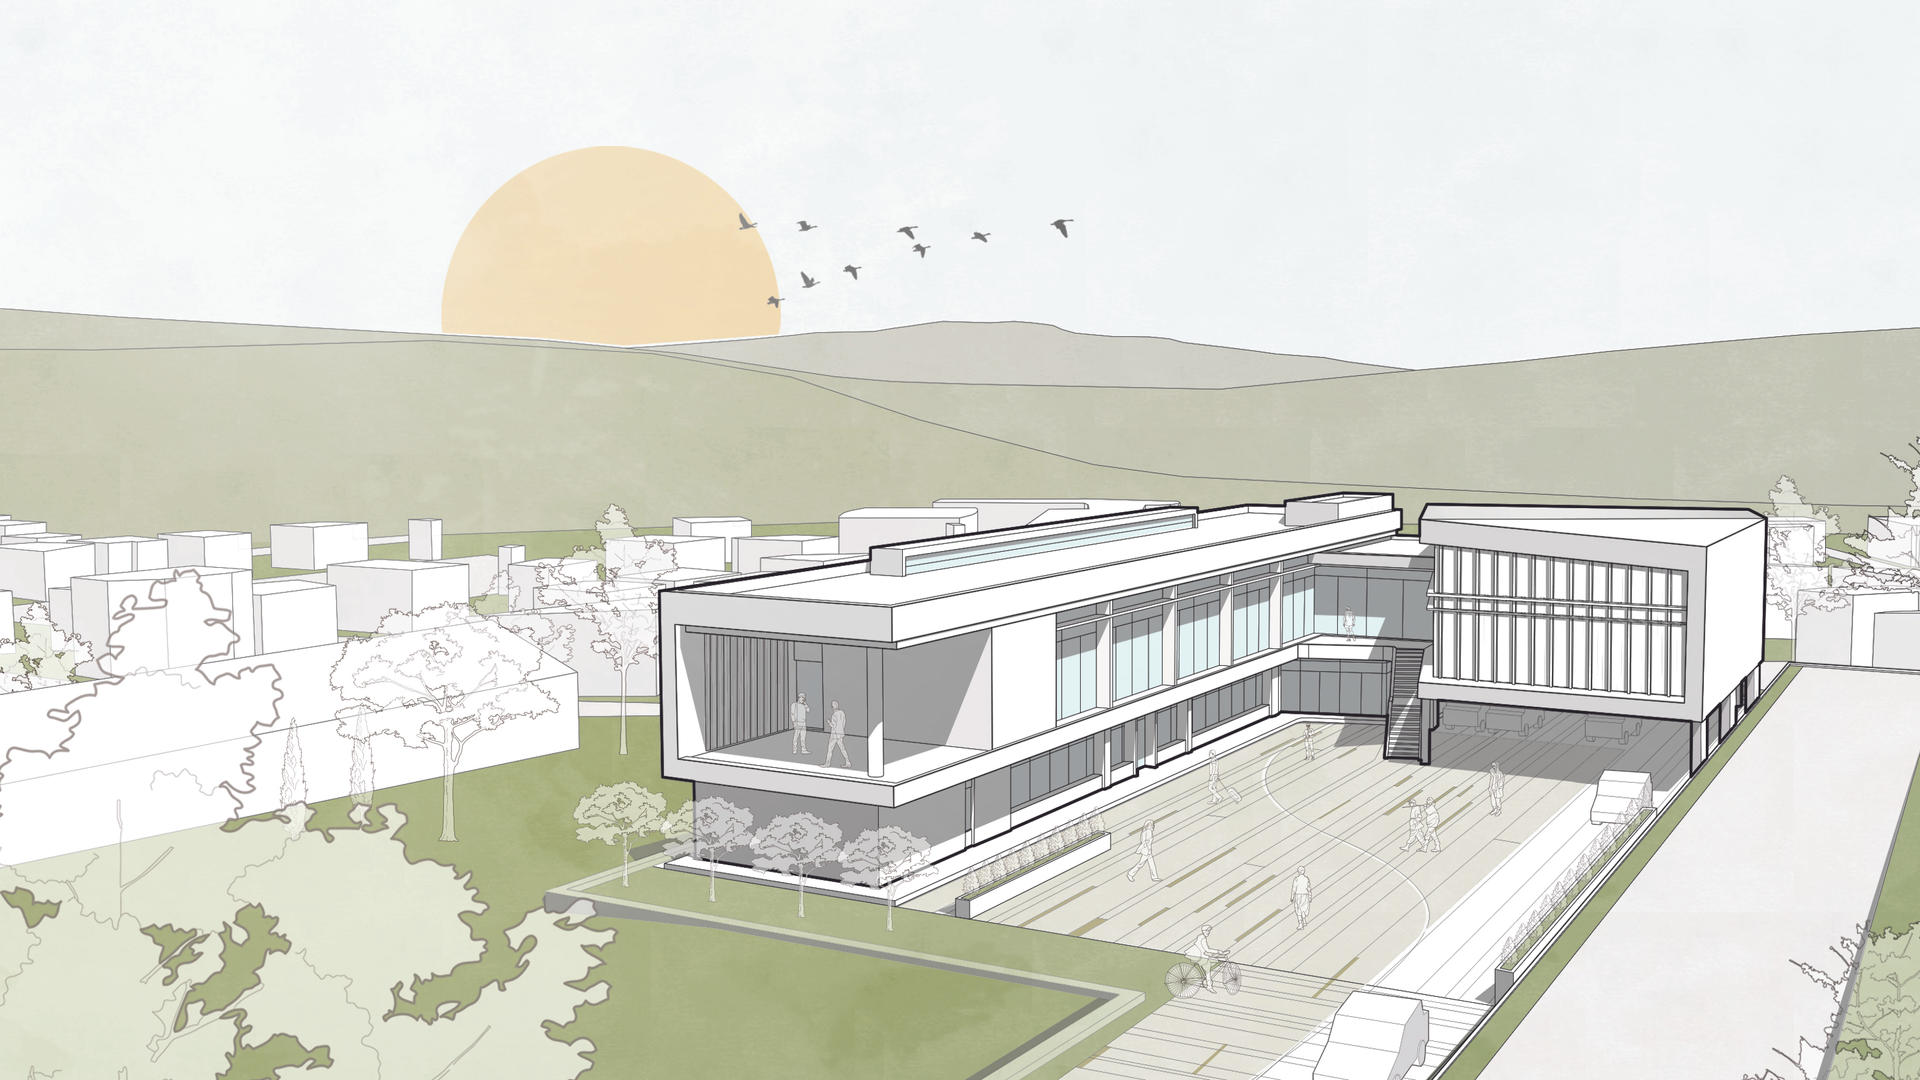 2020.02 _ JEOLLANAM-DO INSTITUTE OF MARINE SCIENCE AND TECHNOLOGY YEOSU BRANCH OFFICE